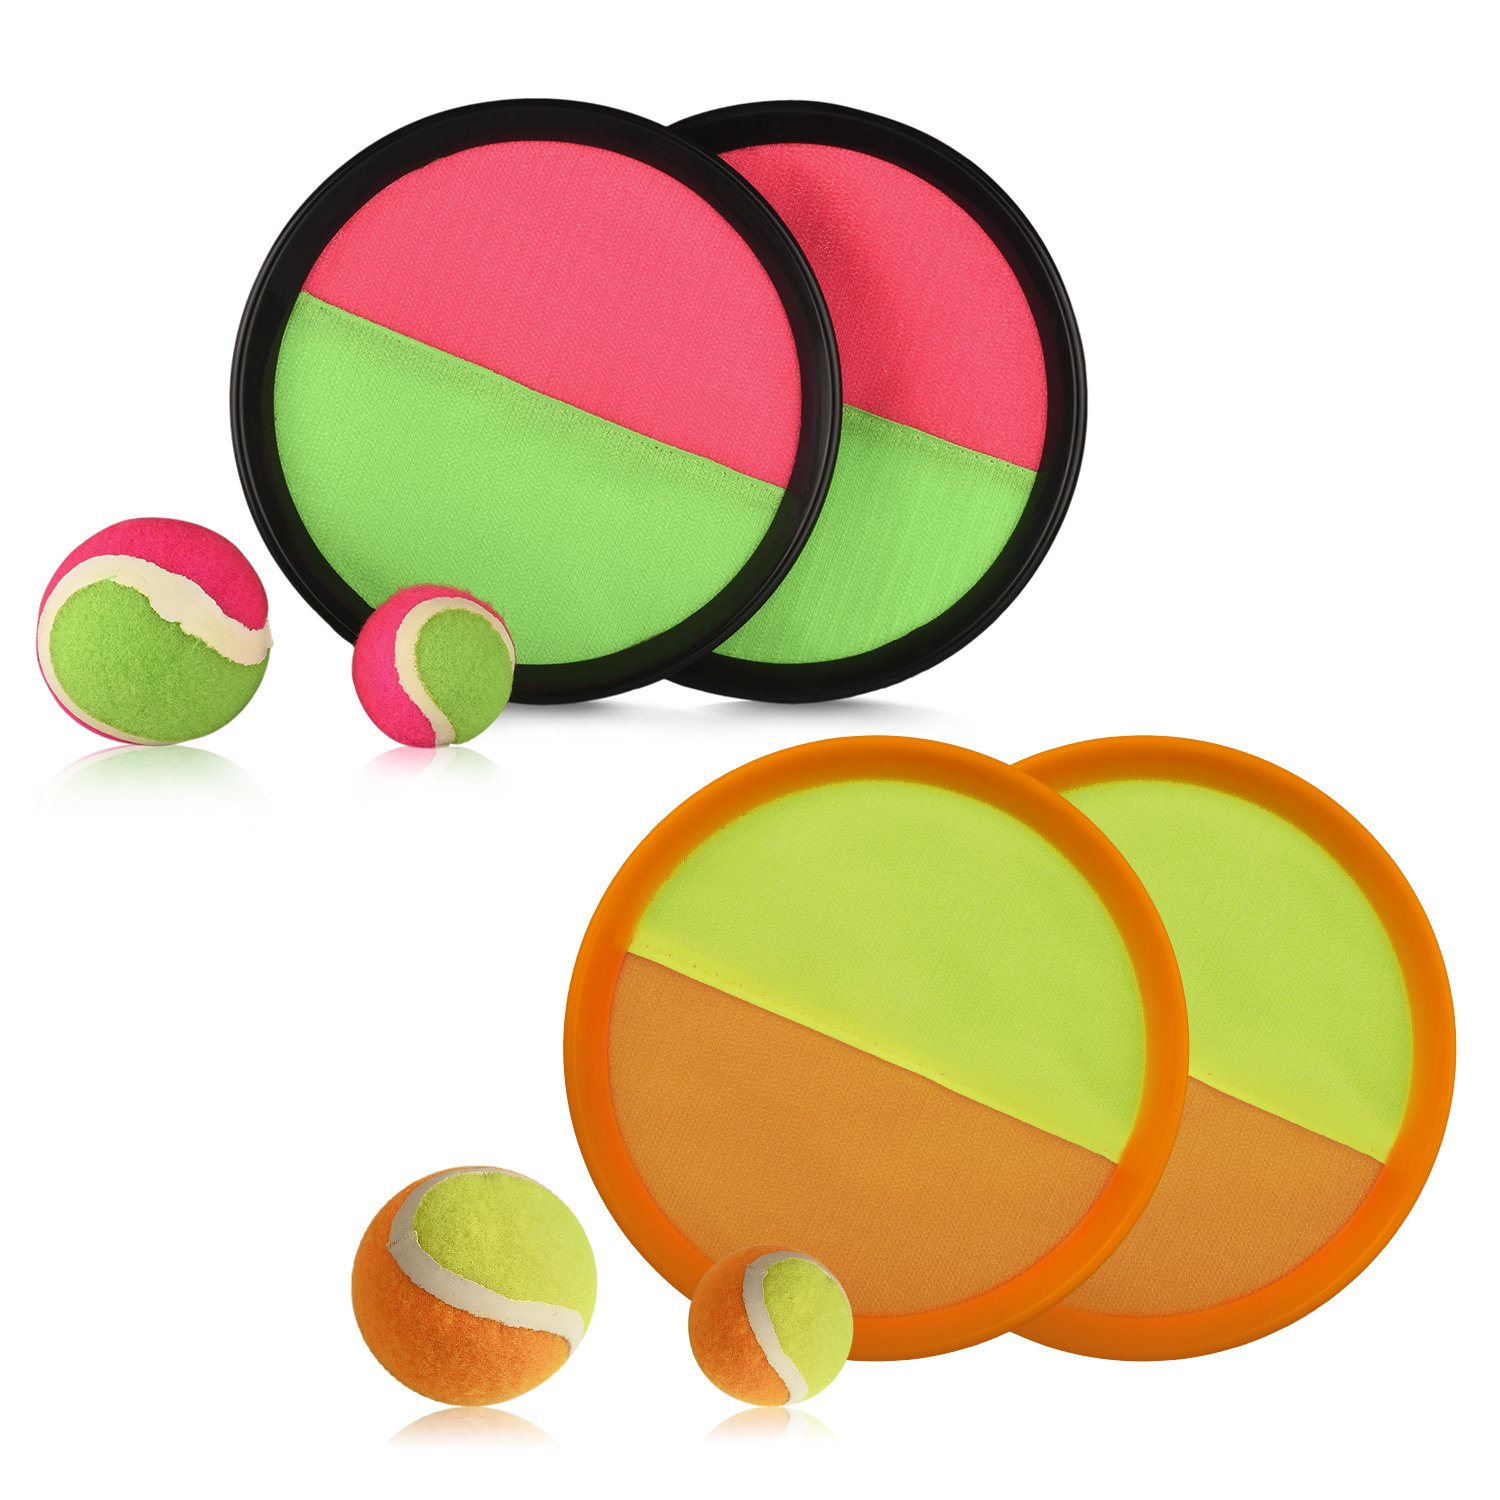 Paddle Toss and Catch Game Set Self Stick Disc Paddles and Toss Ball Sport Game Equally Suitable Game for Kids Adults Outdoor or Indoor Each Set Includes 4 Paddles and 2 Small 2 Big Balls